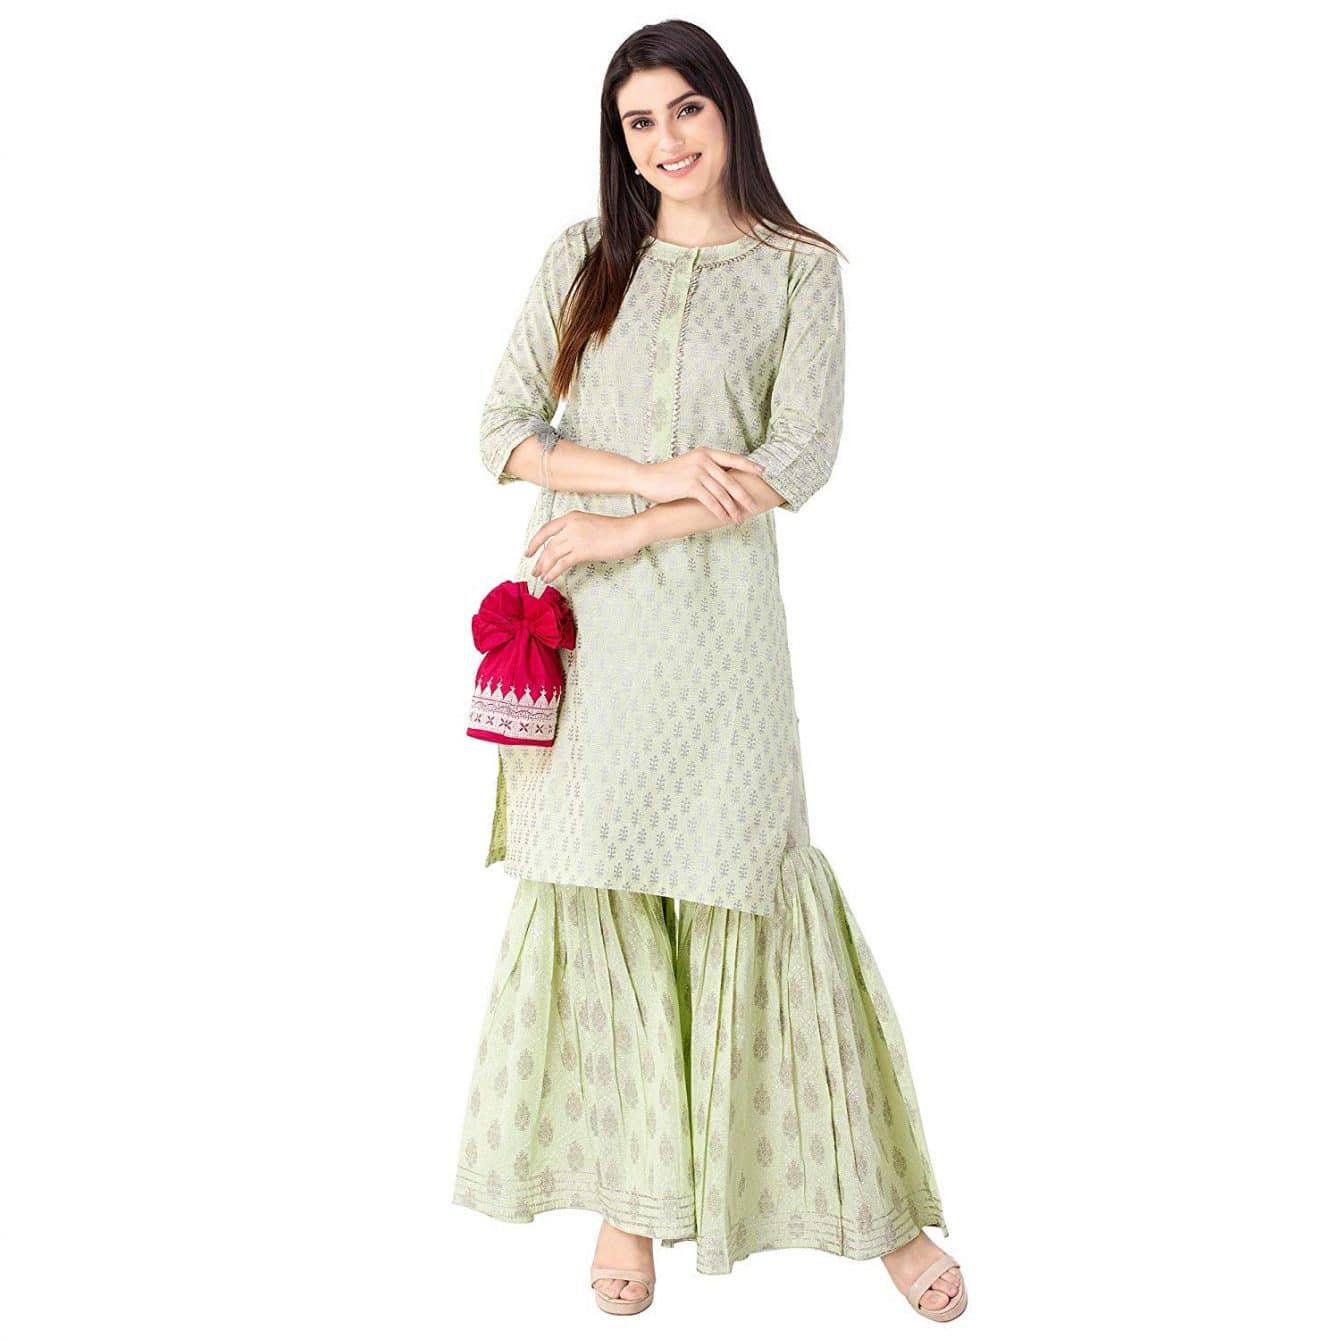 Women's cotton sharara suit